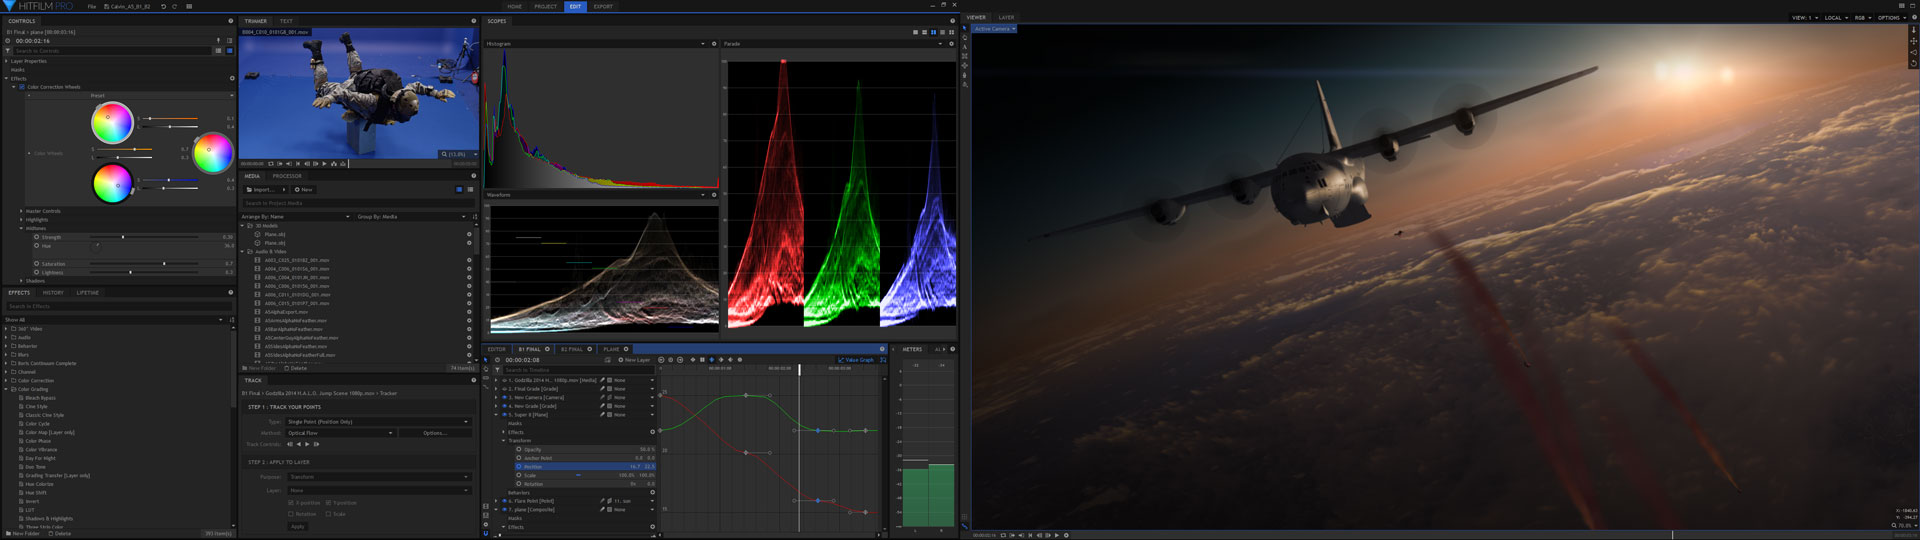 HitFilm Pro interface with color scopes and multi-screen preview of plane composite from Halo Jump VFX masterclass